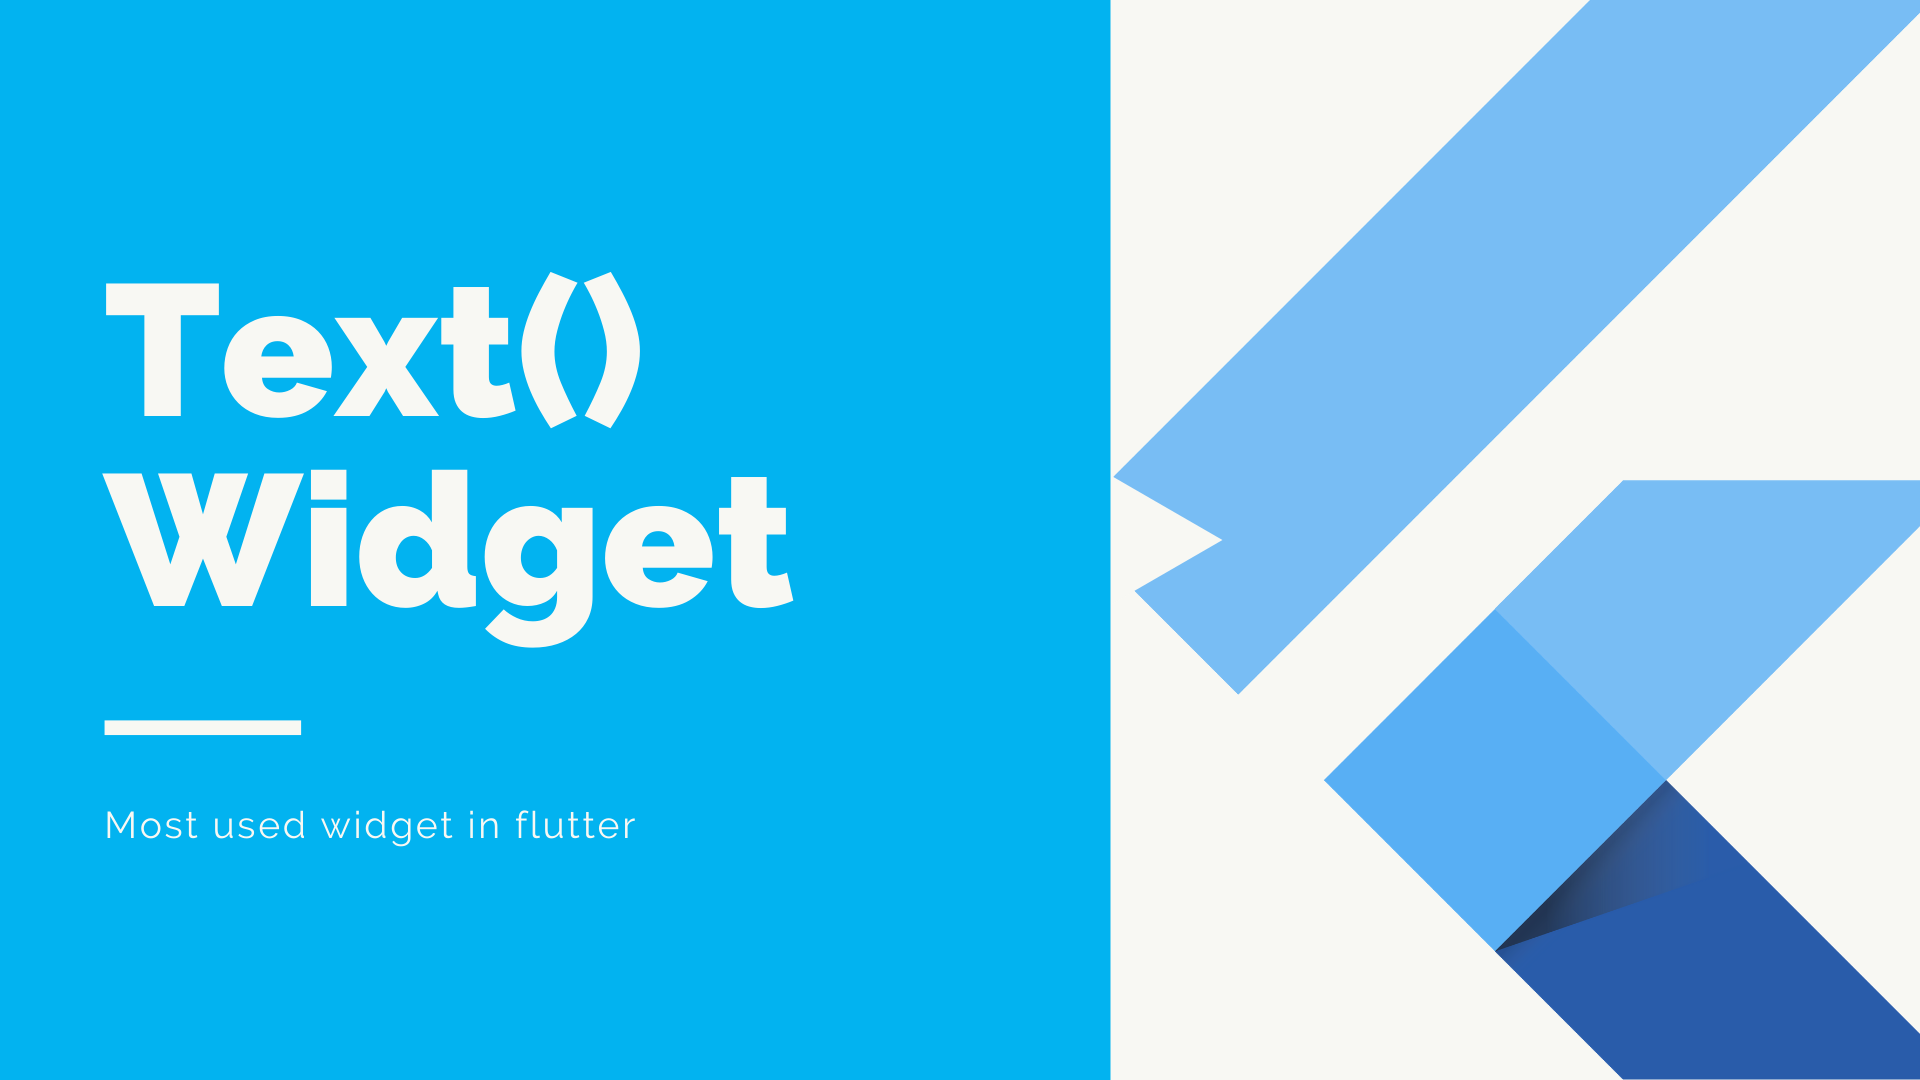 Most used widget in flutter, Text Widget